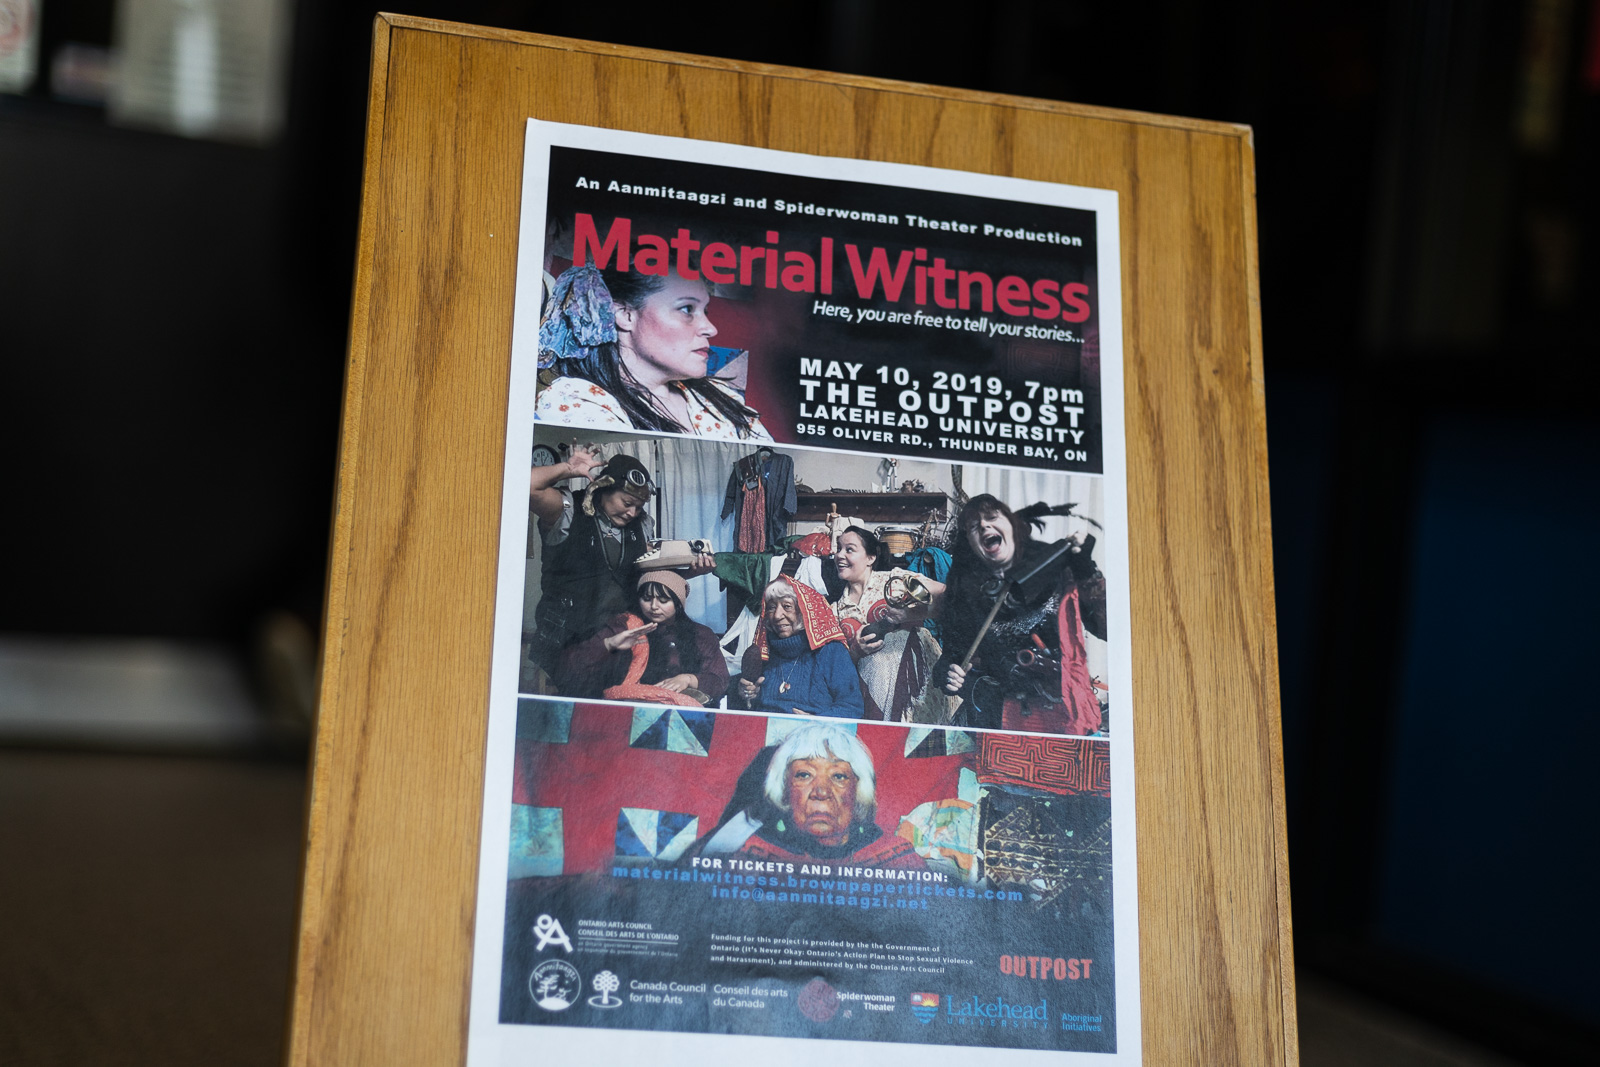 lu-material-witness-blog-17.jpg